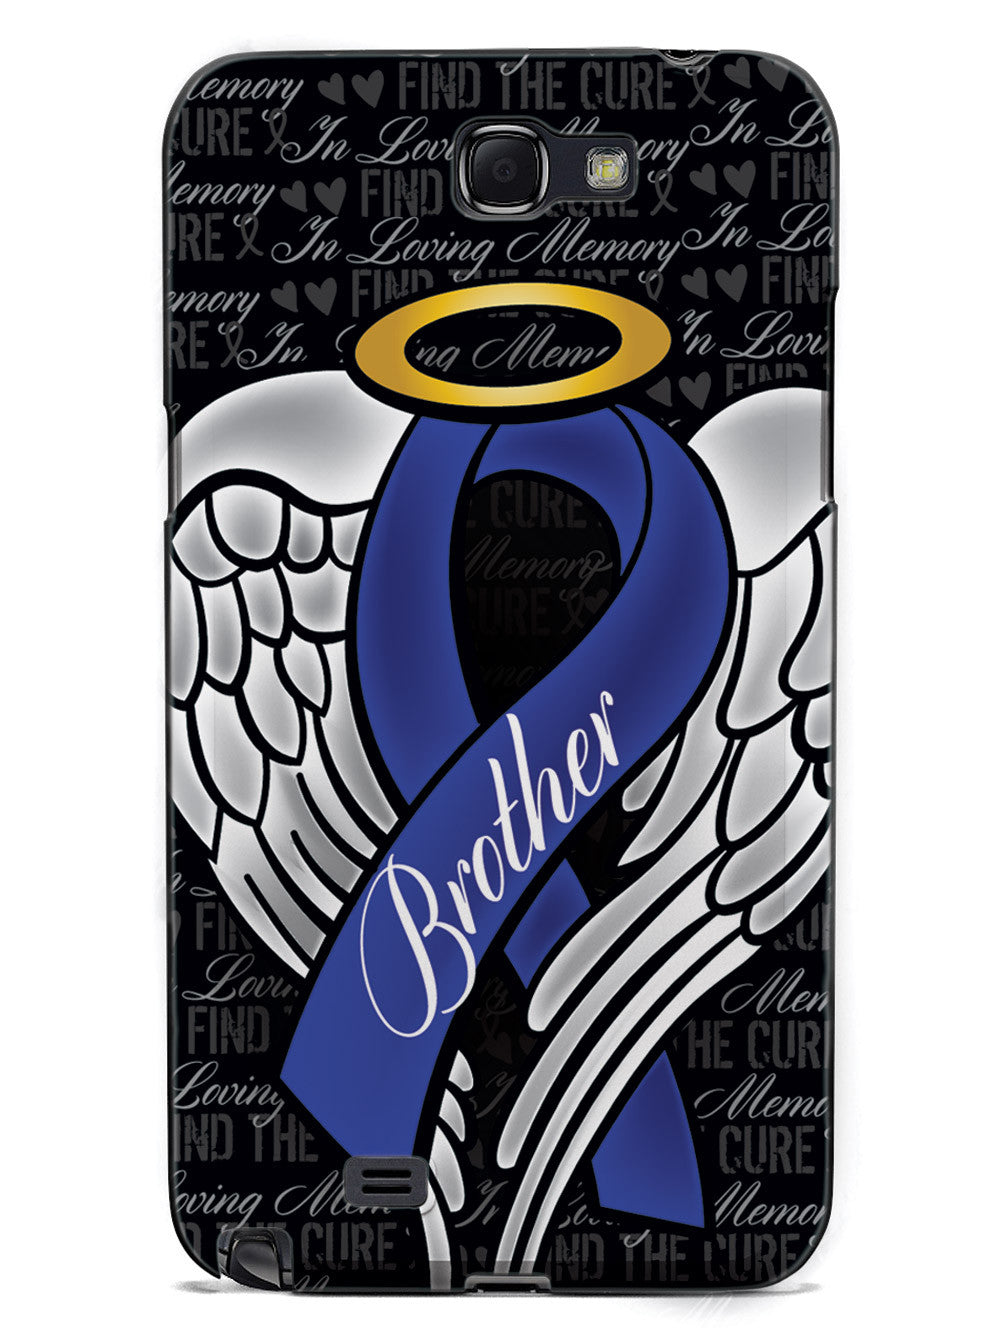 In Loving Memory of My Brother - Blue Ribbon Case